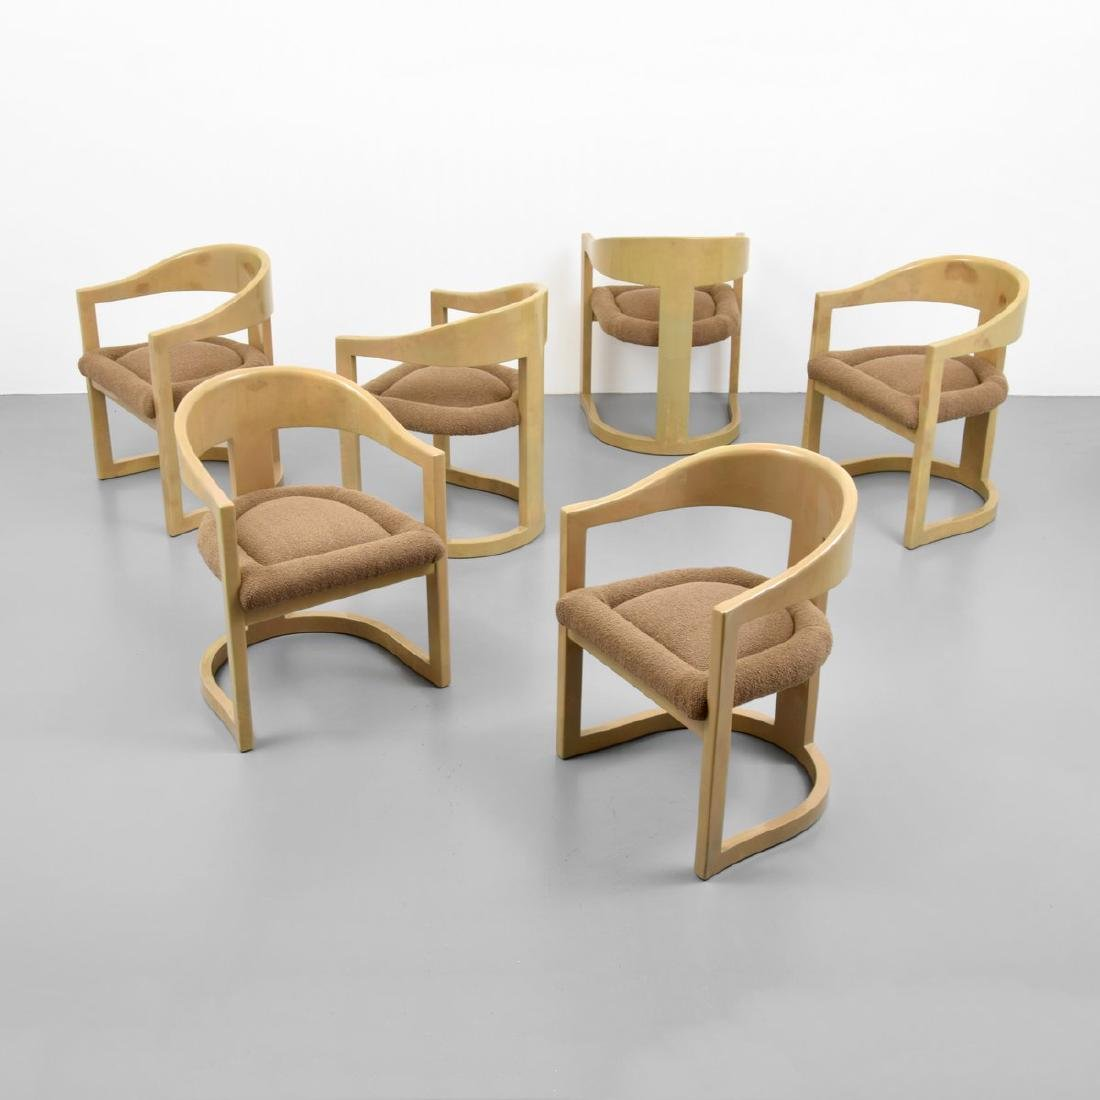 Karl Springer ONASSIS Chairs, Set of 6